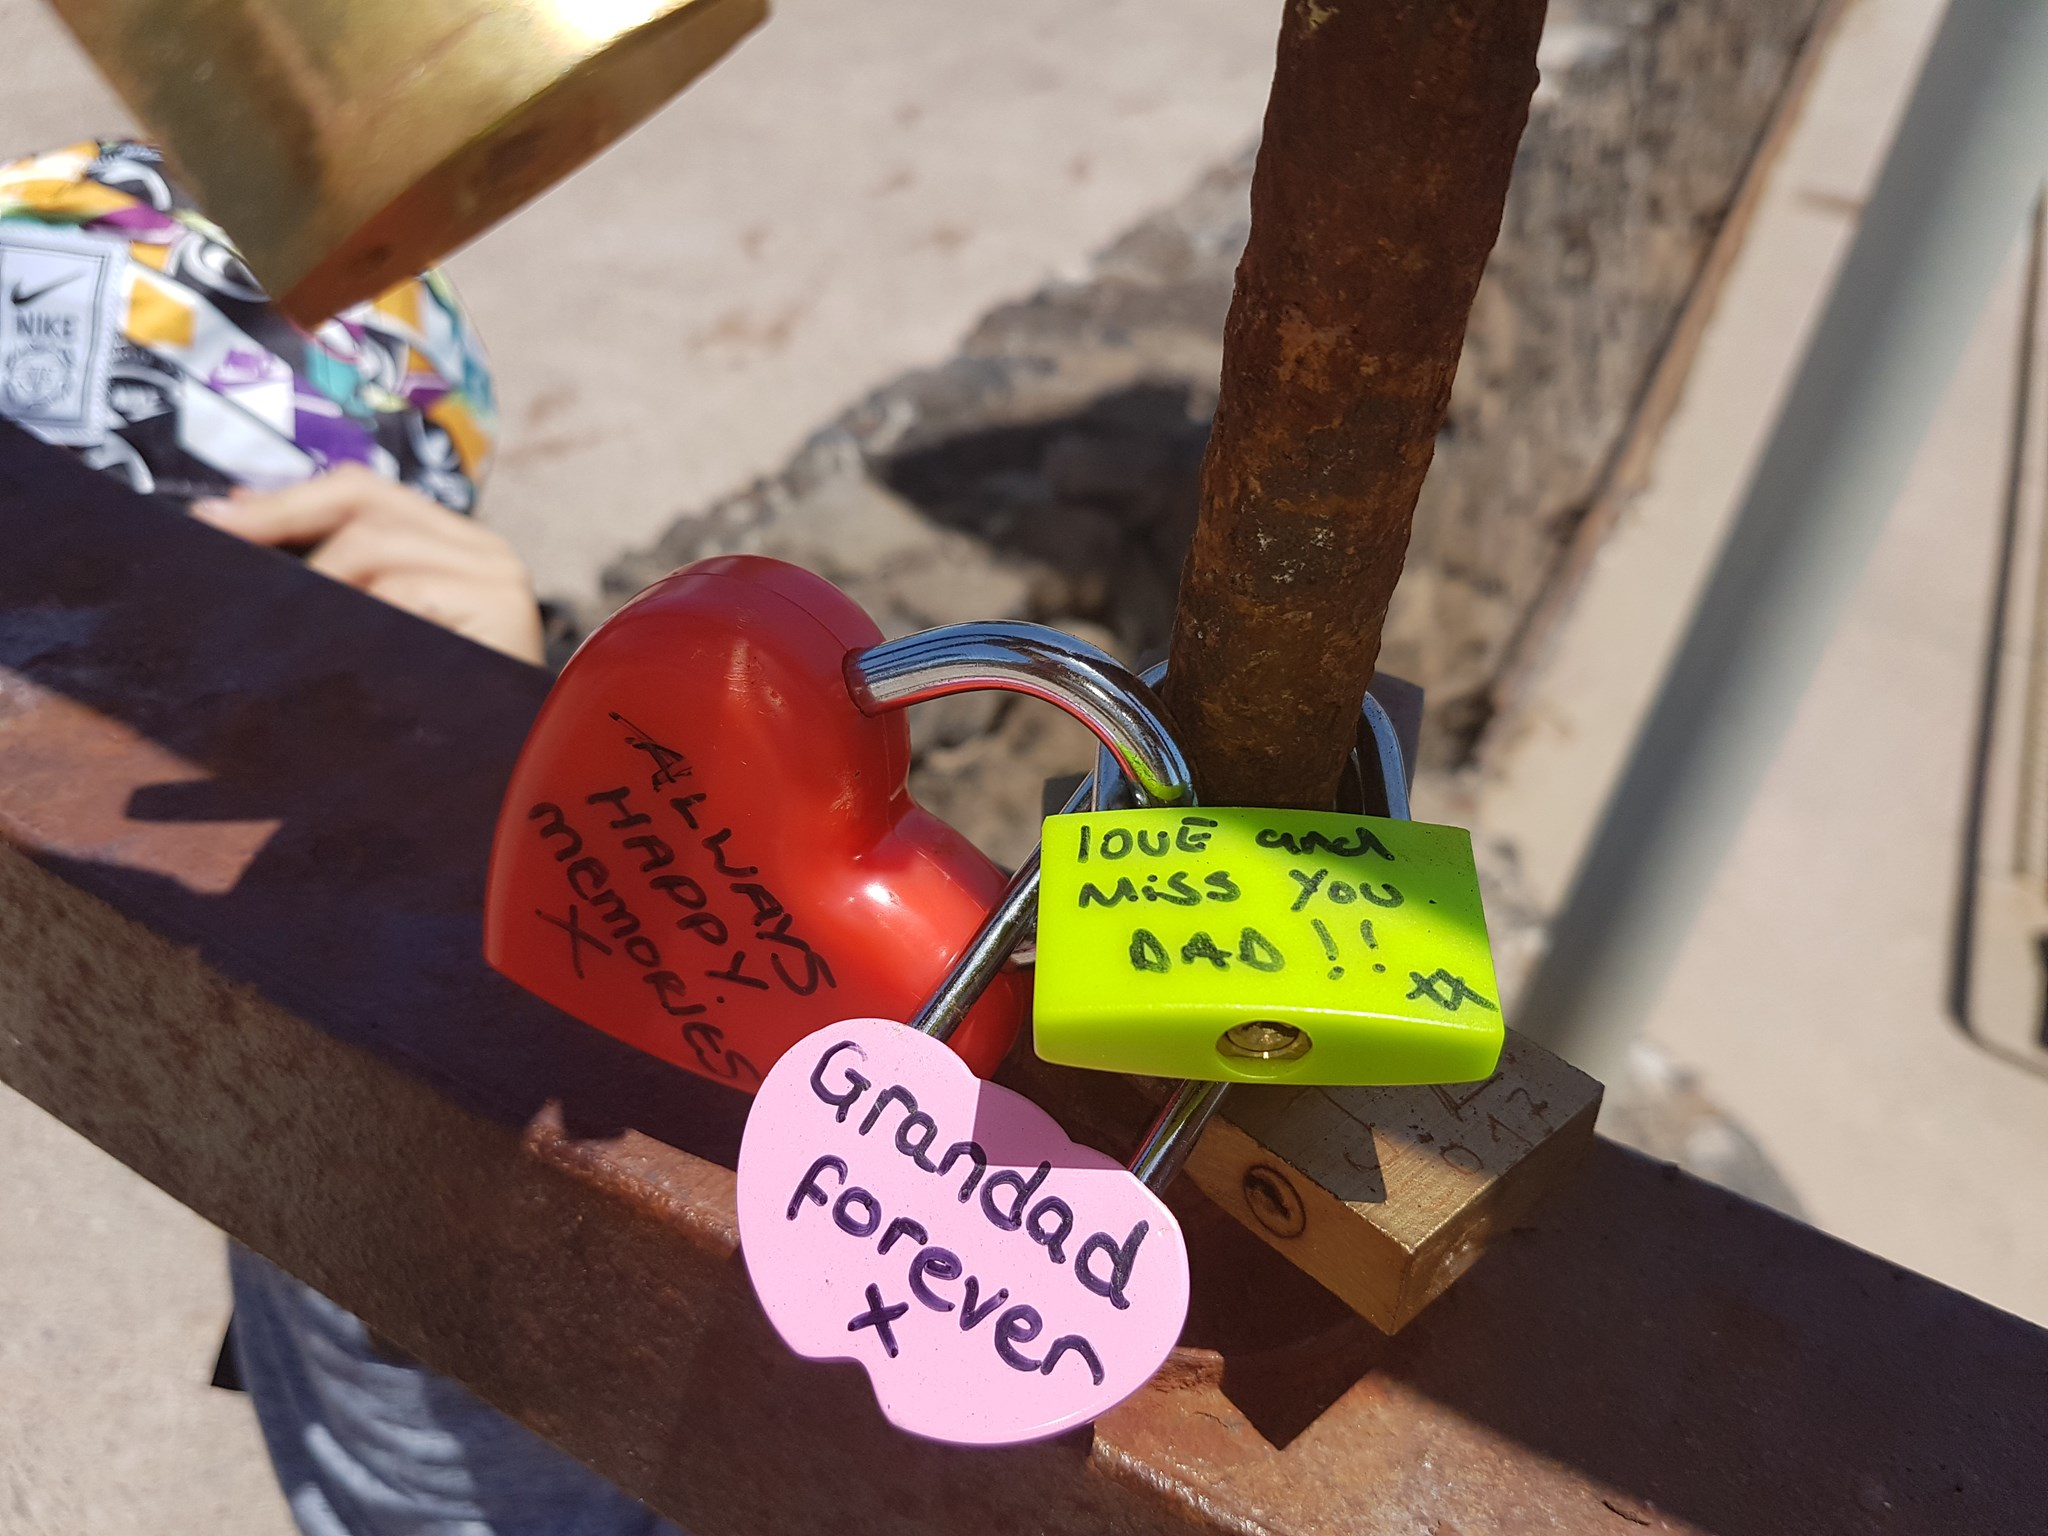 Dads padlocks in lanzarote big love lock (hear) from mum the green padlock is from Shane and the pink one is from me george and kids yours and mums  padlock is locked round mine georges and kids and shanes because u and mum always  hold us together x